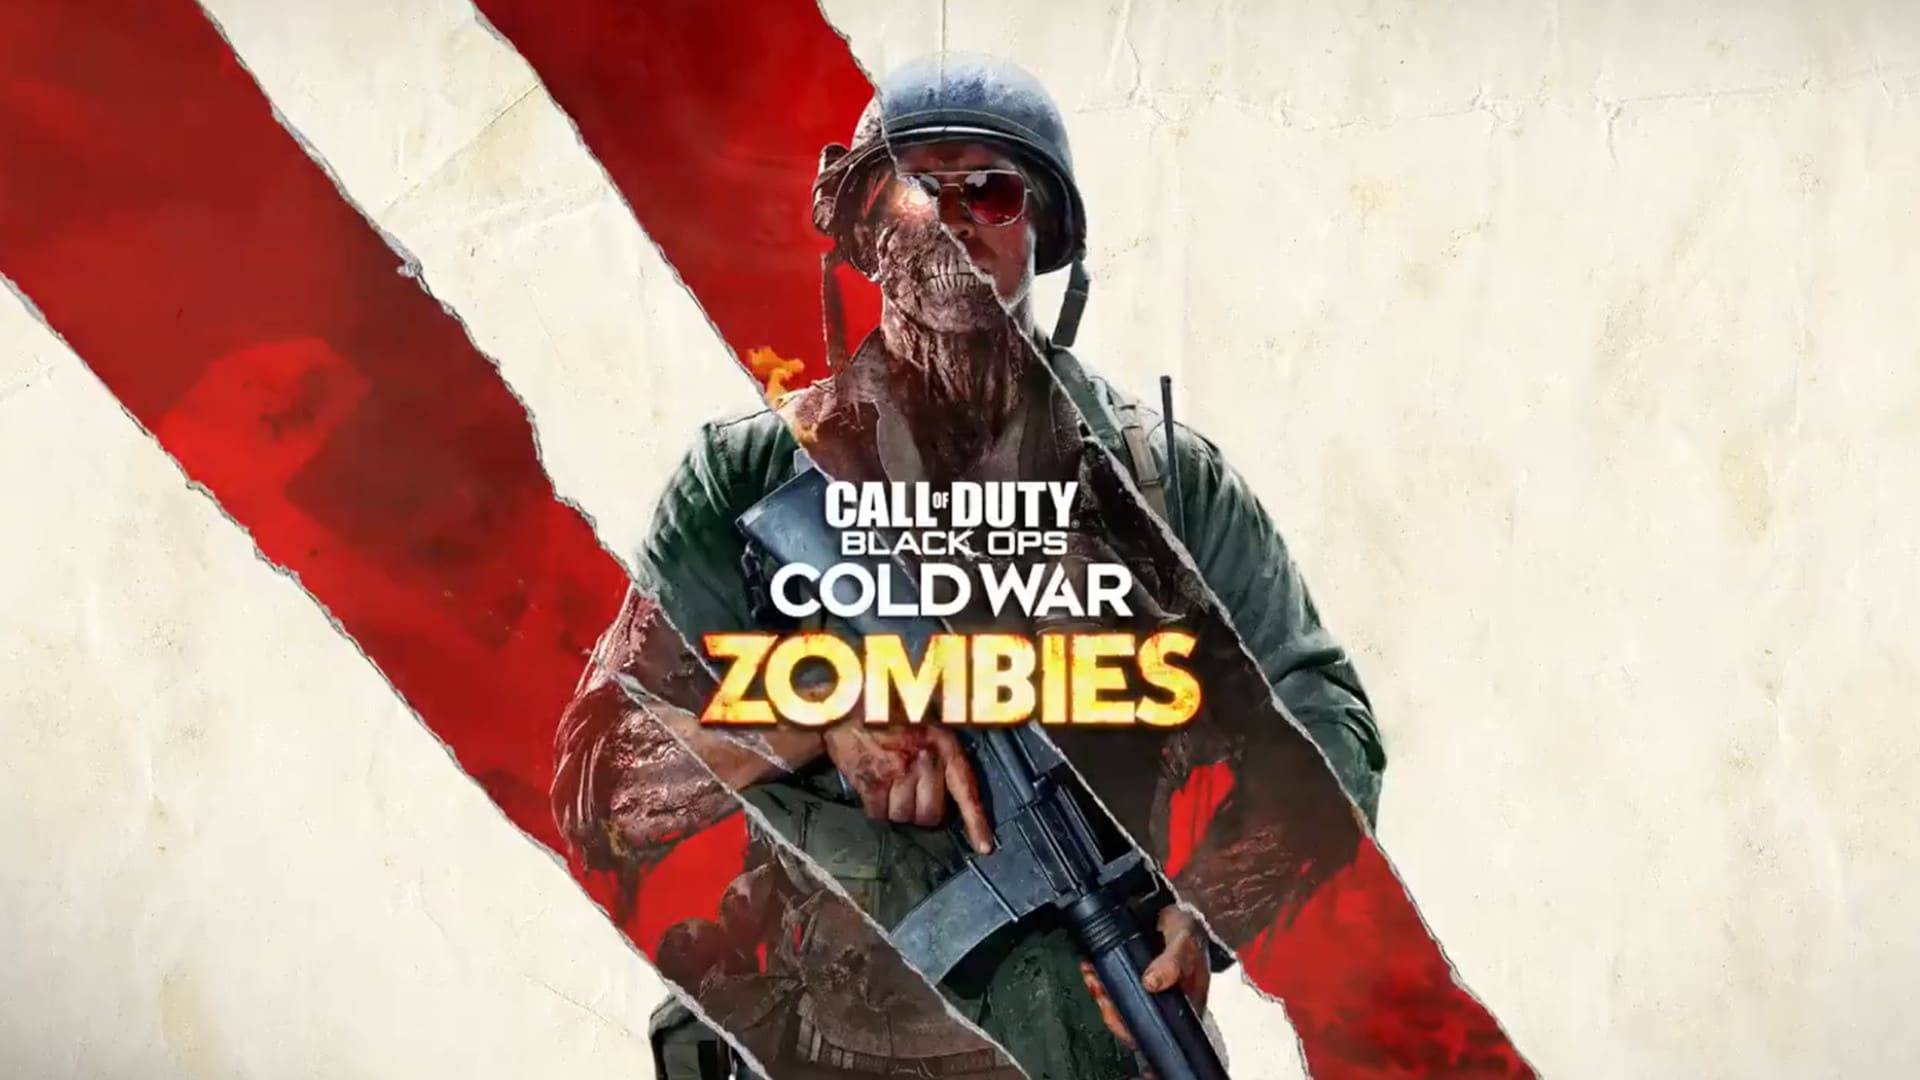 Black Ops: Cold War Zombies Reveal Breakdown